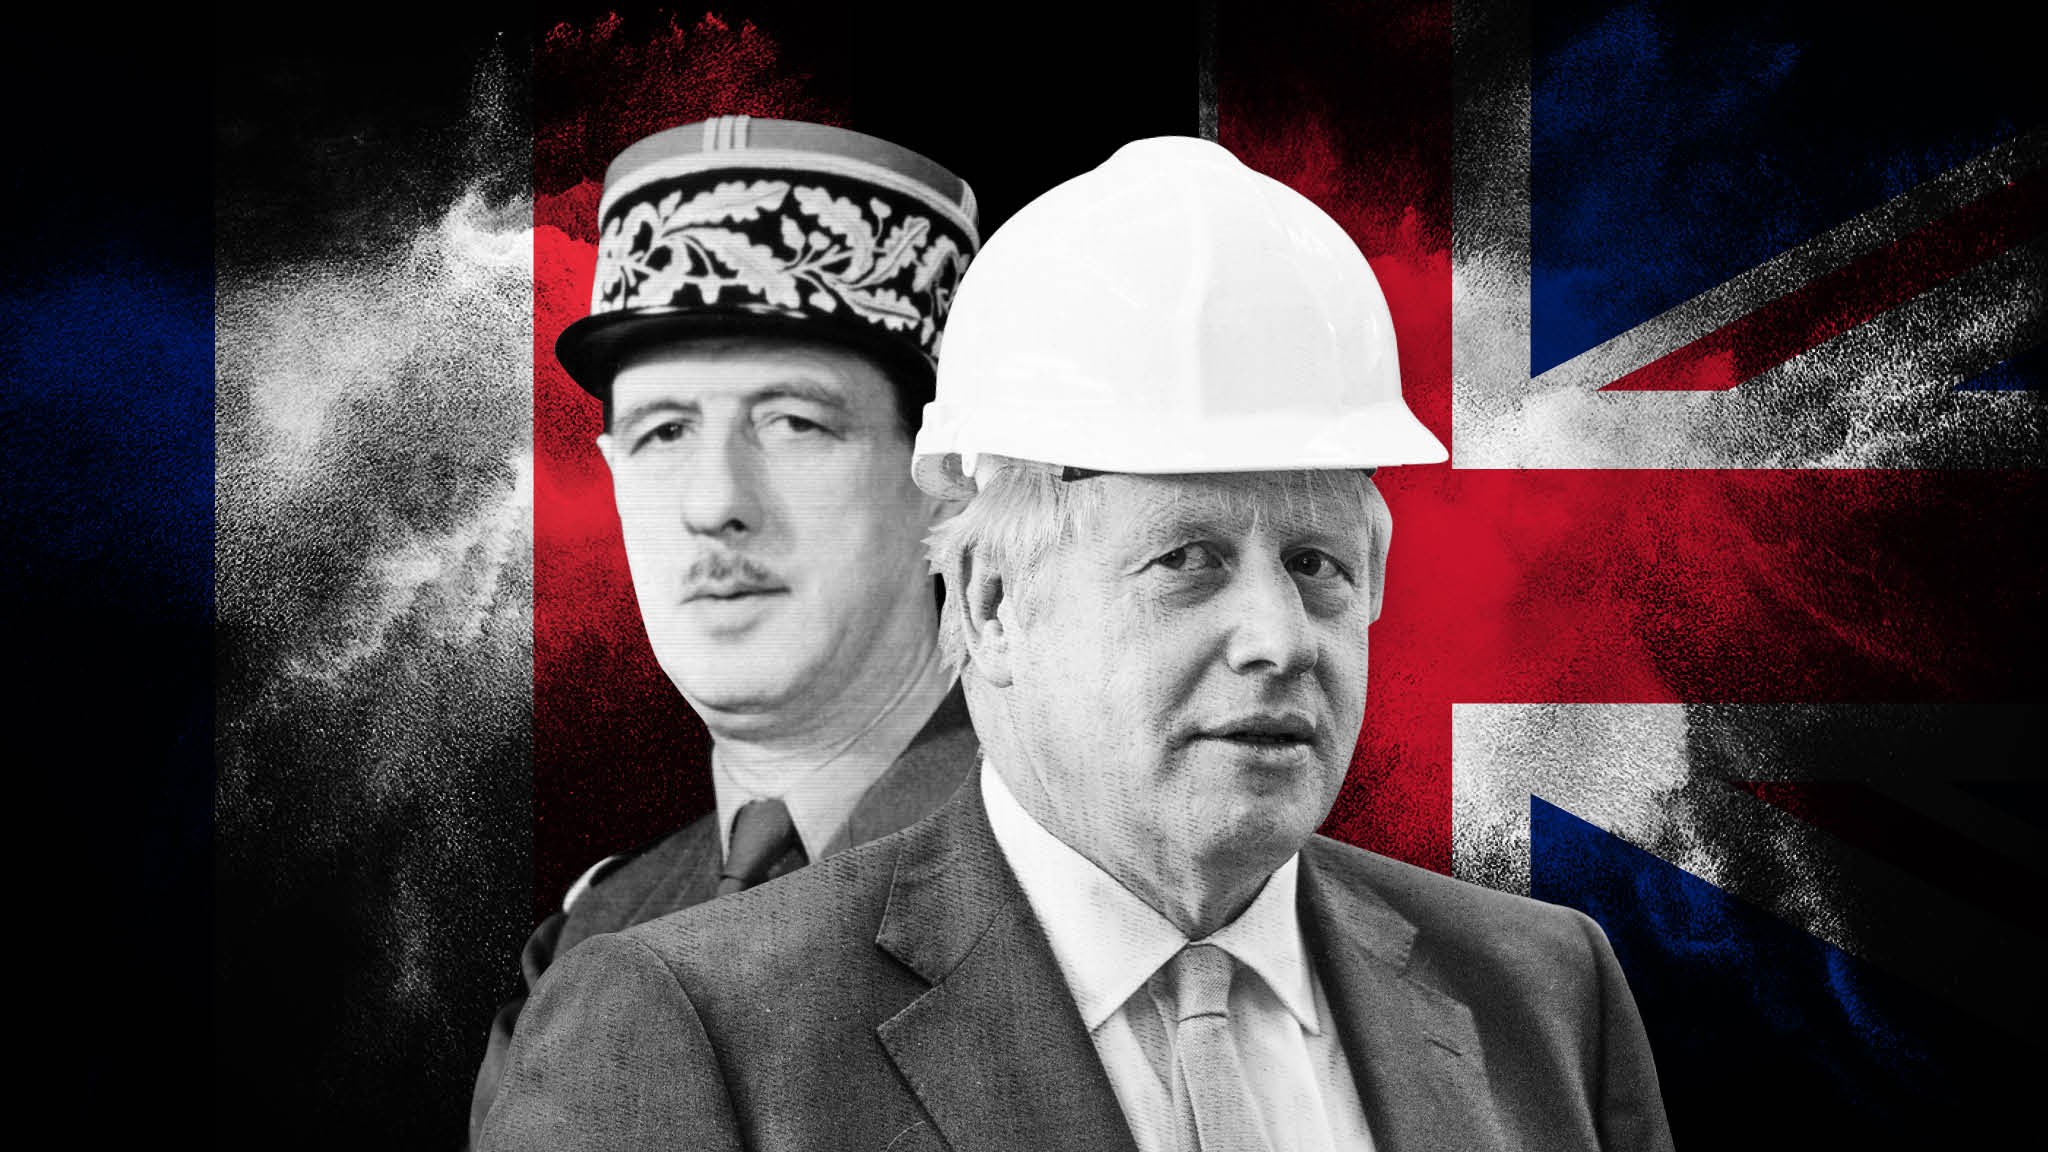 Boris Johnson is not Churchill but de Gaulle